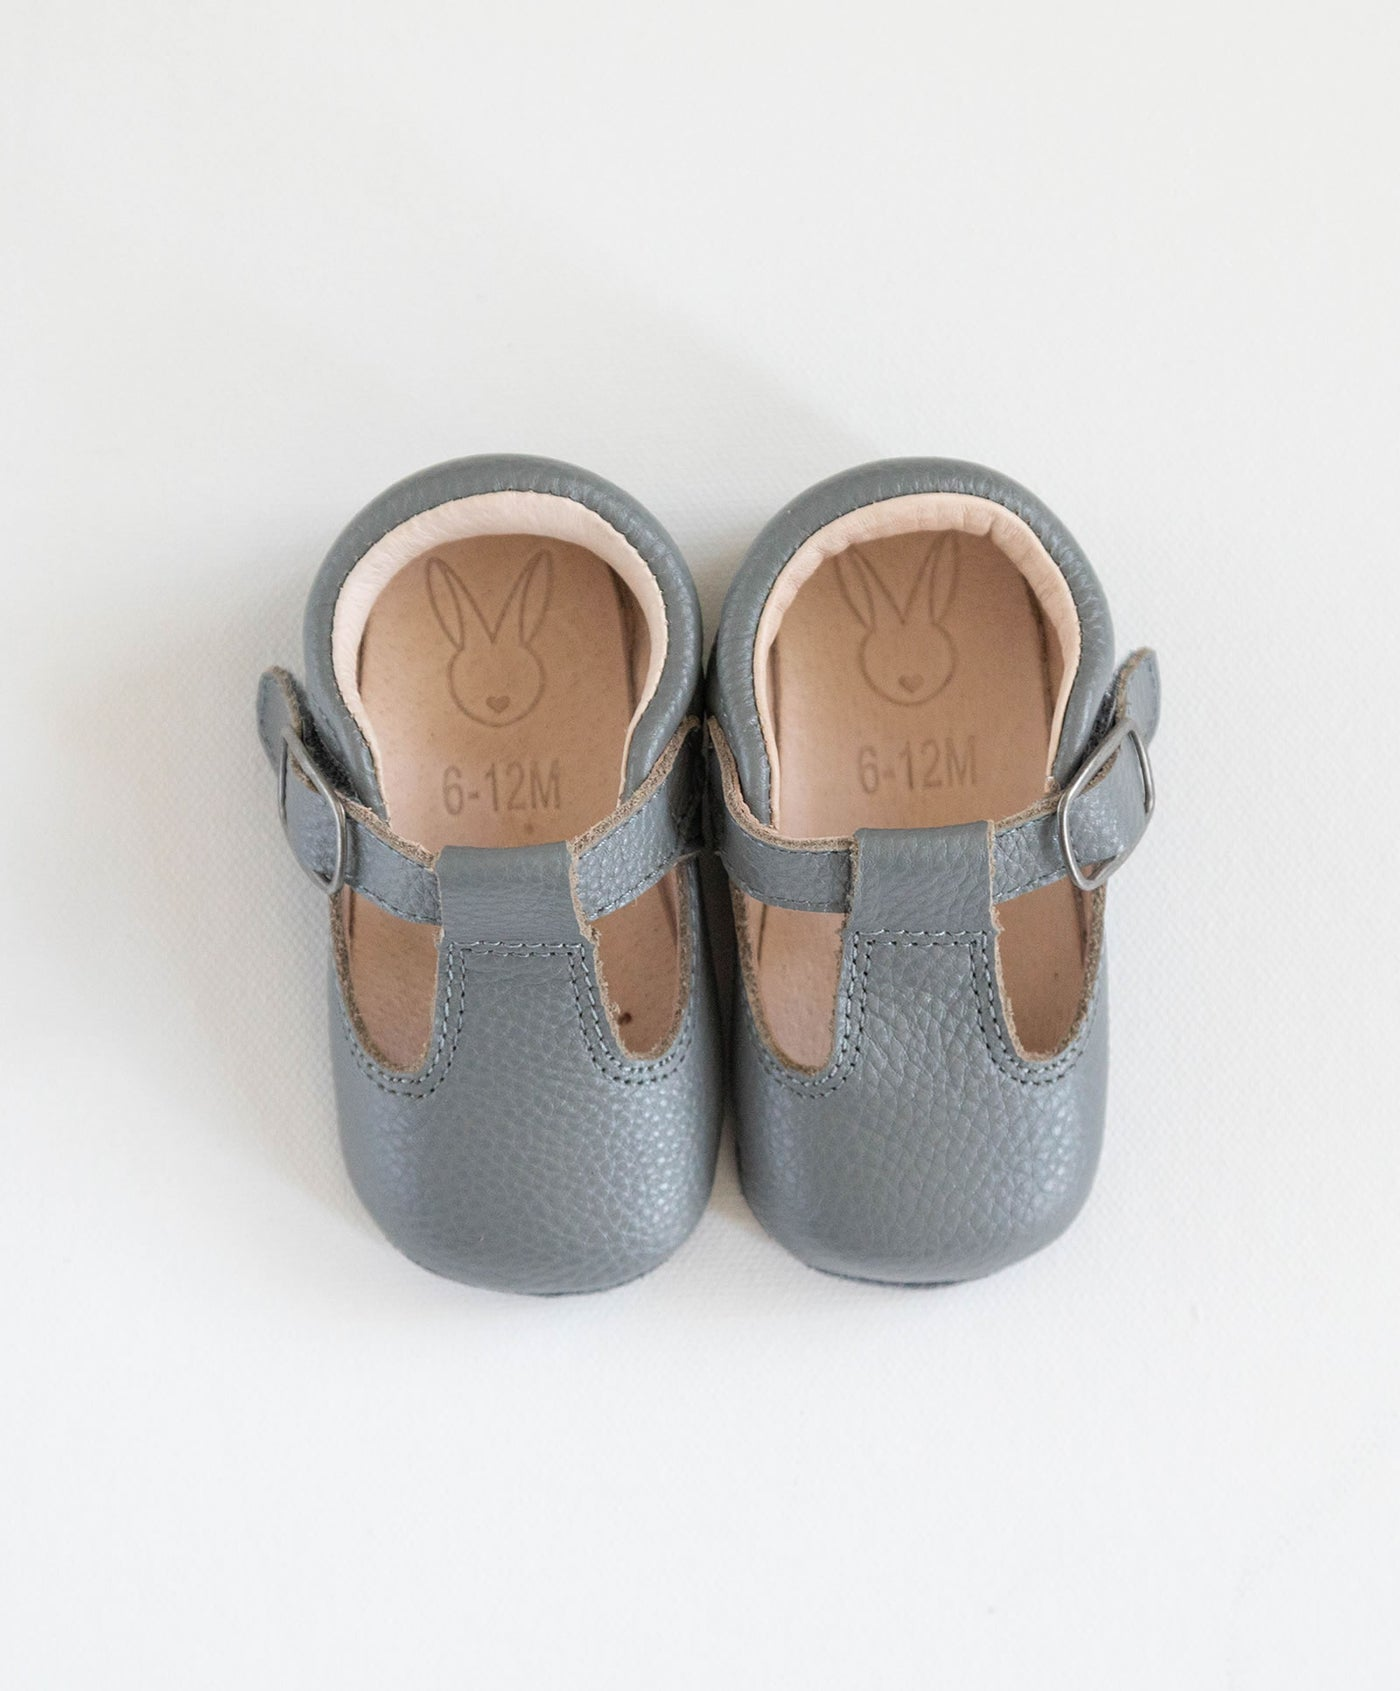 Shaughnessy Baby Shoes - Grey